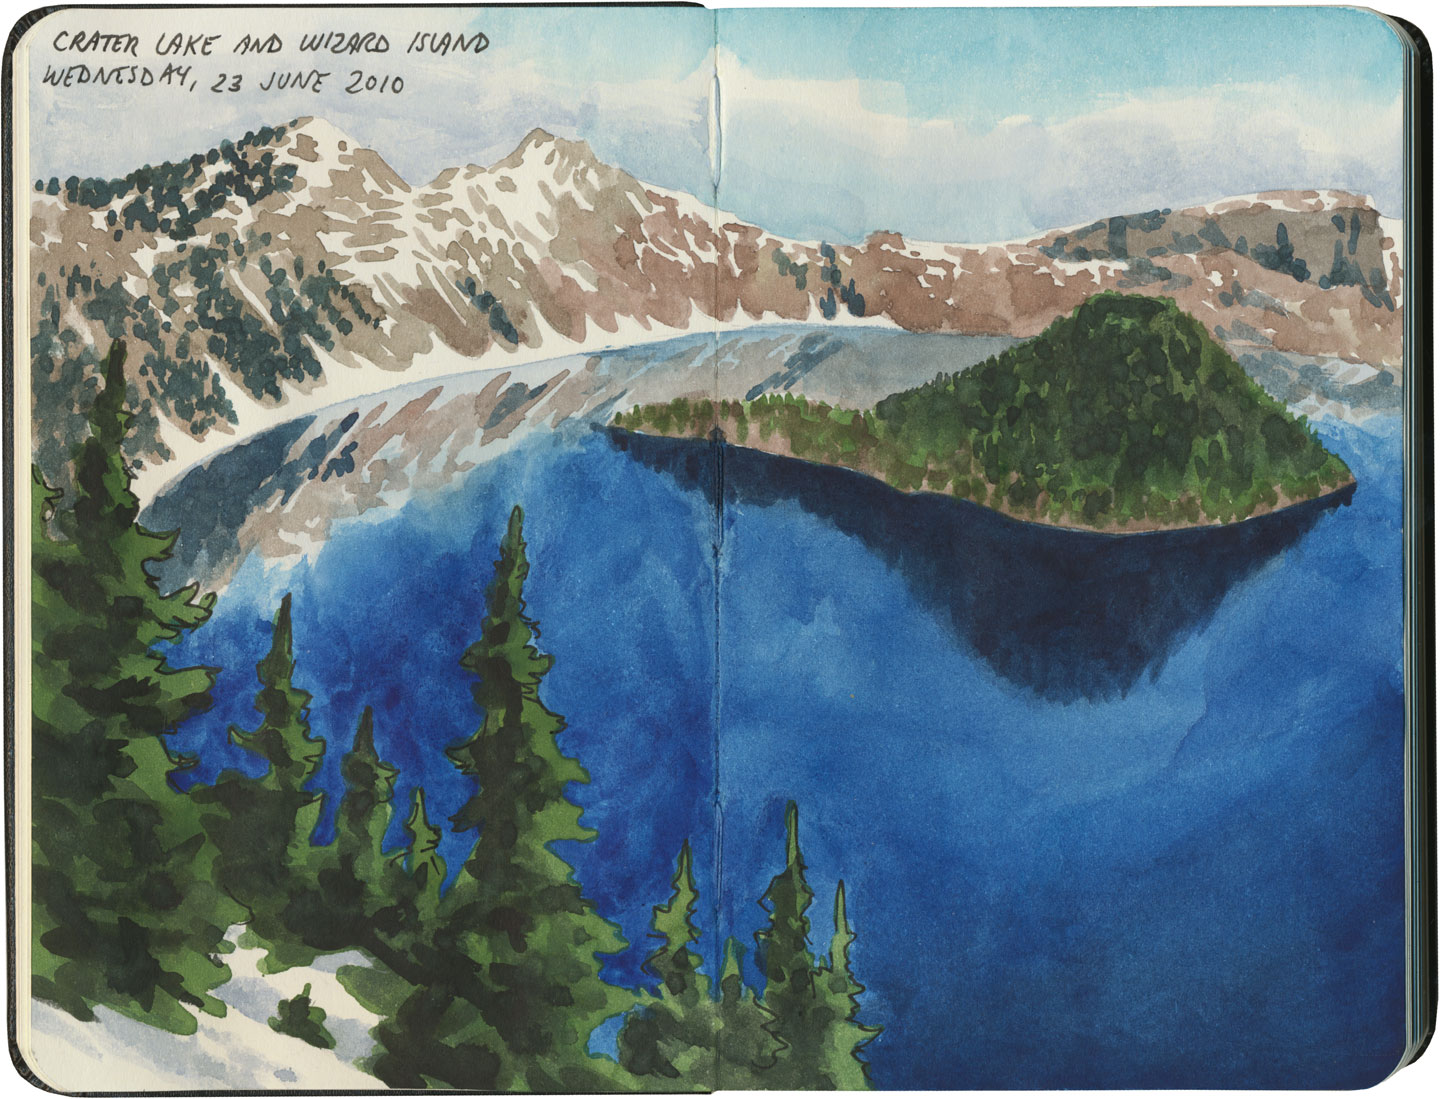 Crater Lake National Park sketch by Chandler O'Leary